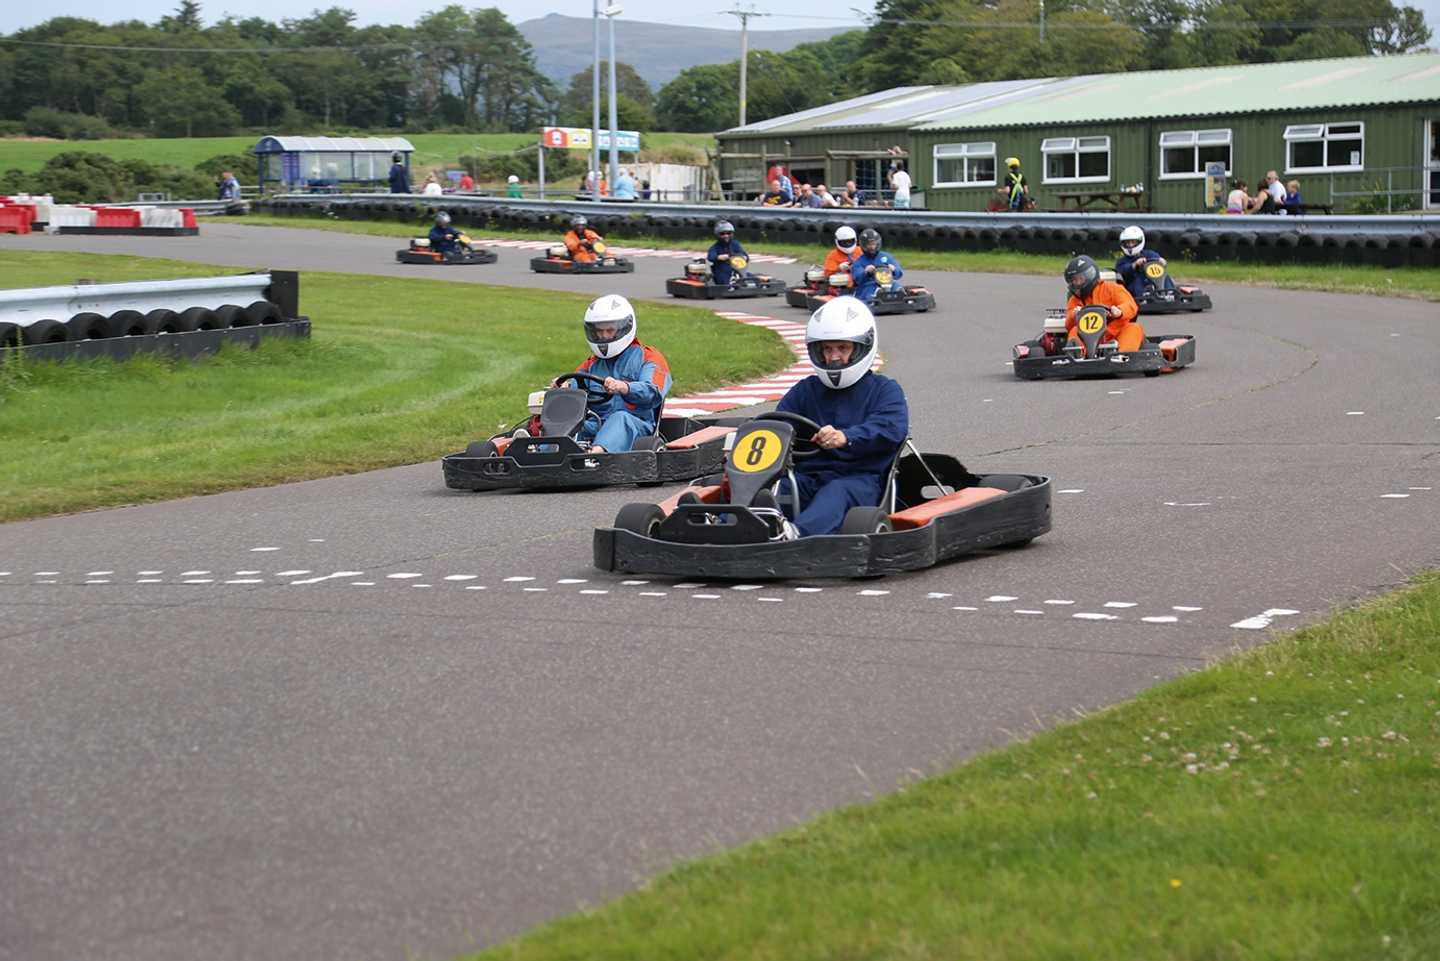 9 drivers in a go-kart race